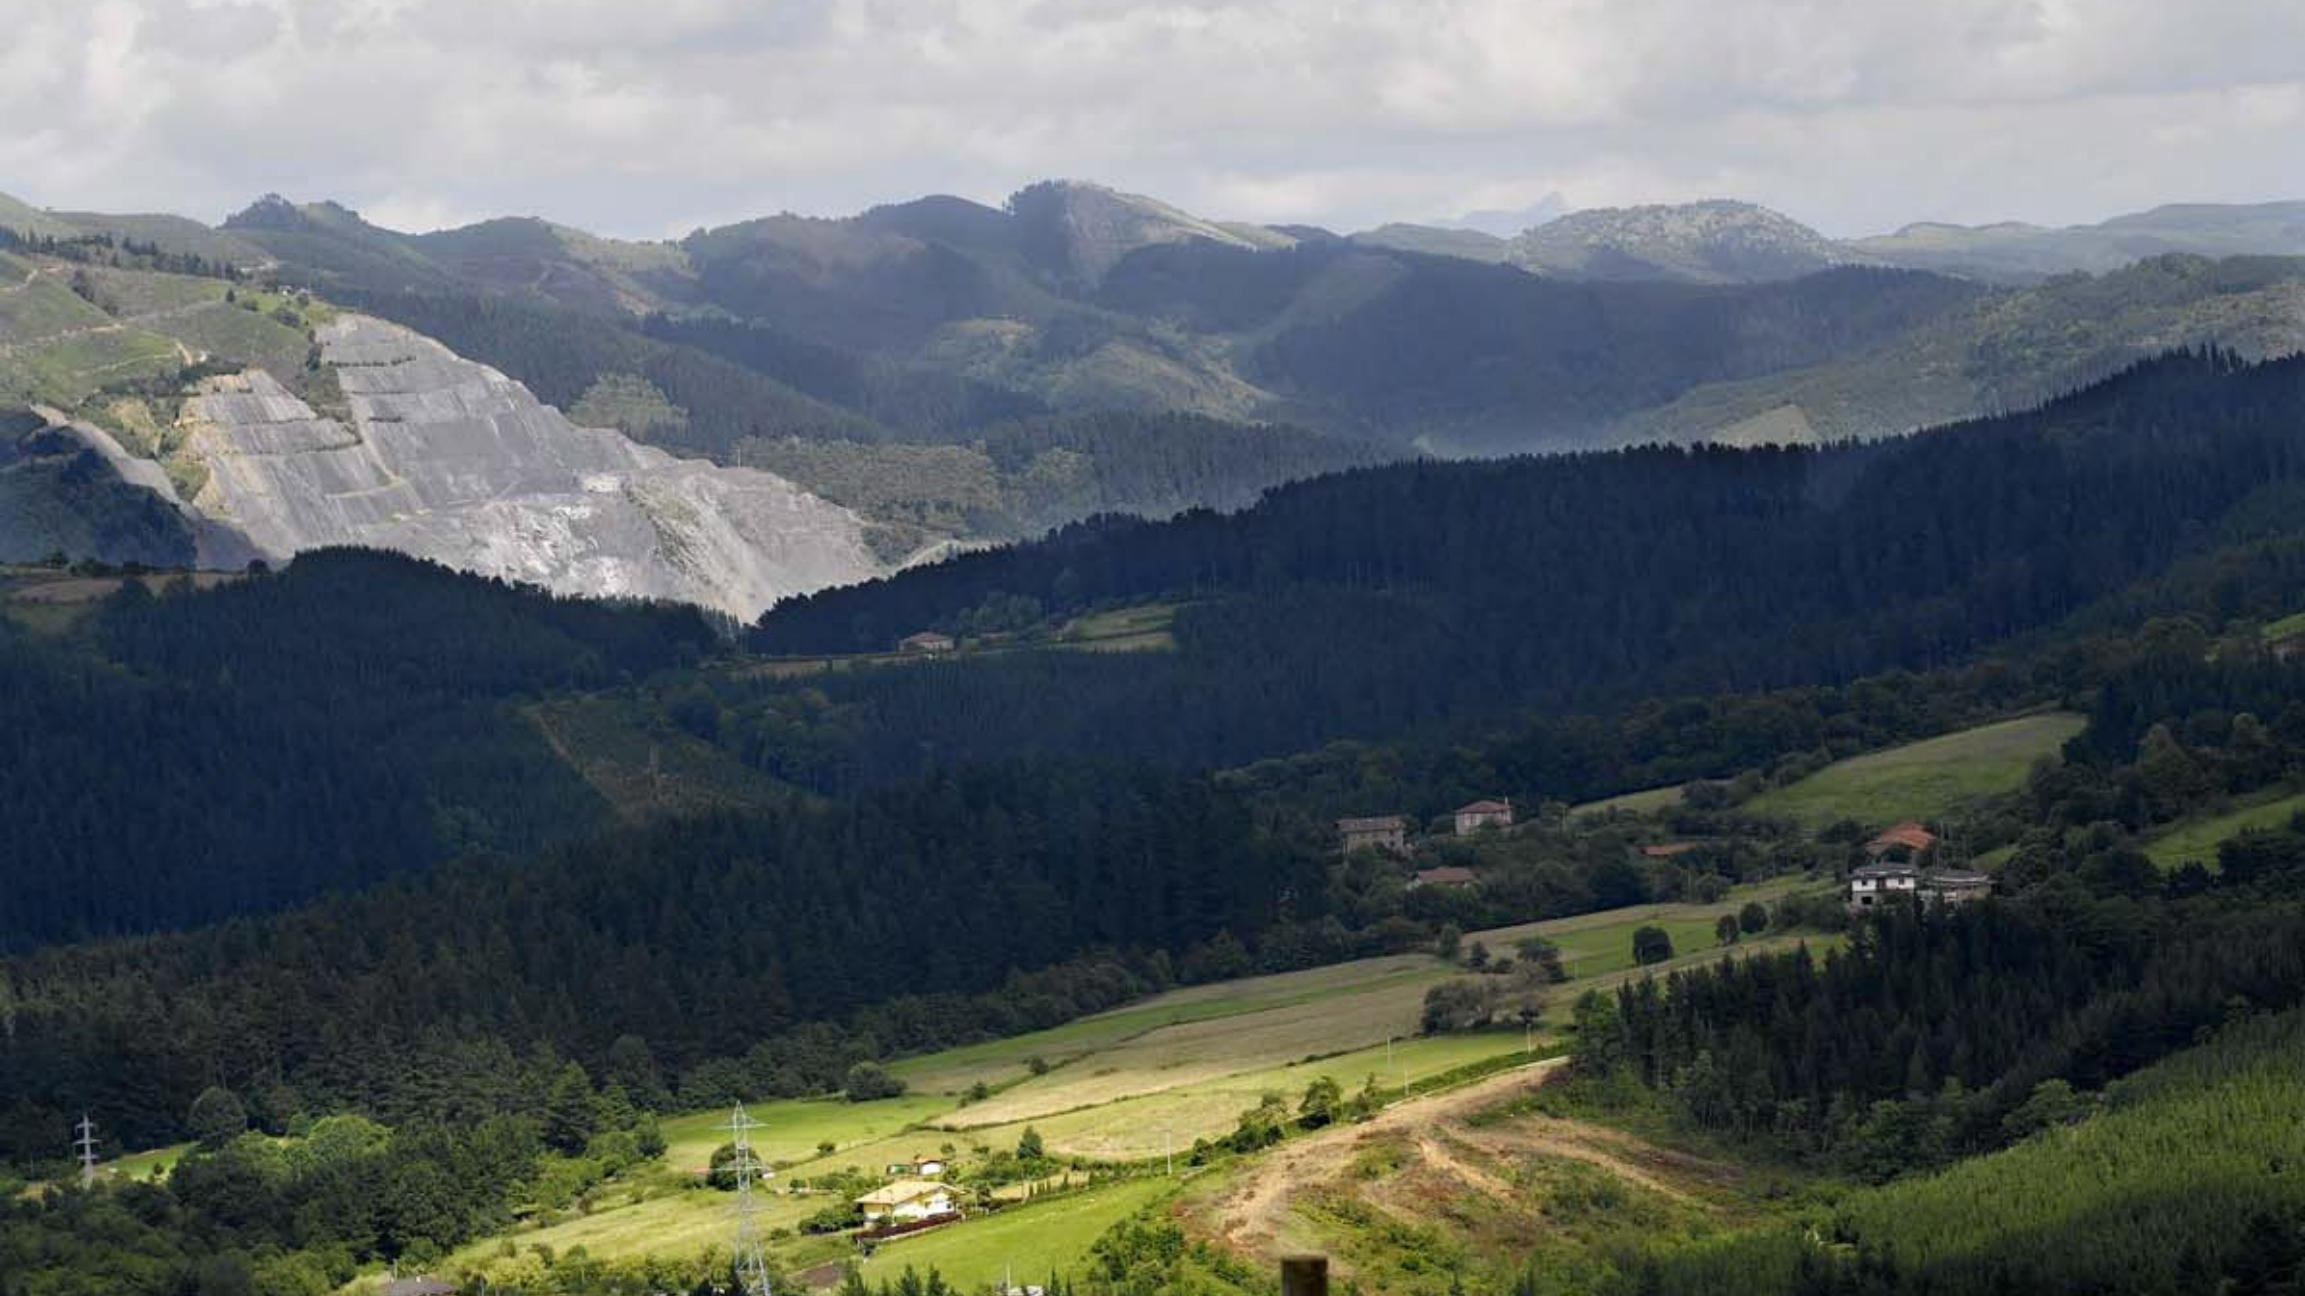 Basque Country - A dreamy landscape